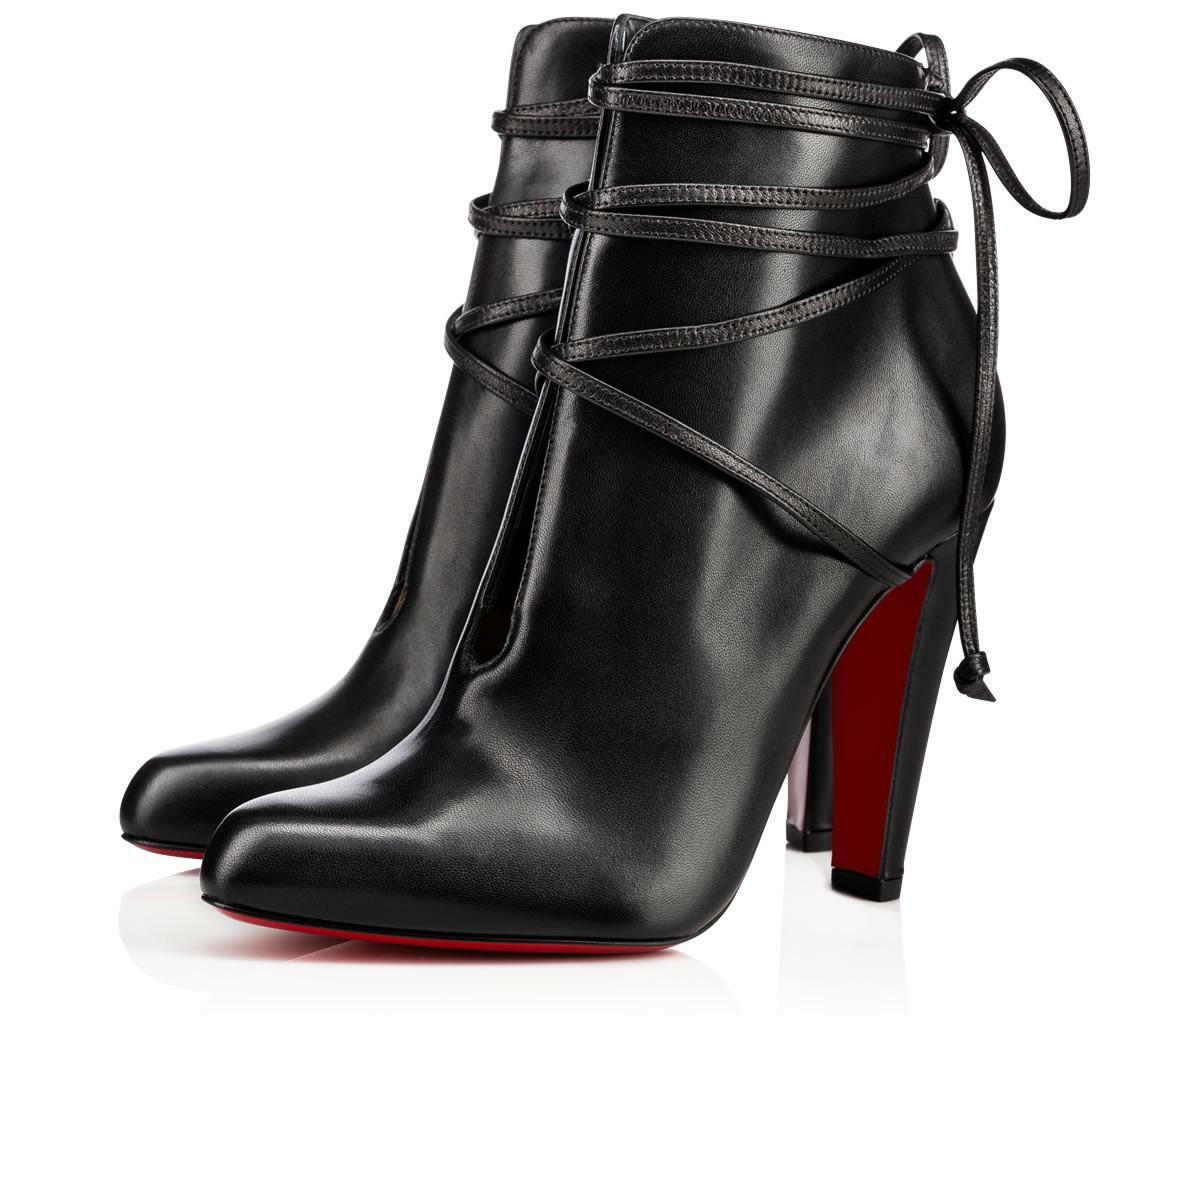 NIB Christian Louboutin S.I.T. Rain 100 Black Nappa Leather Ankle Heel Bootie 35